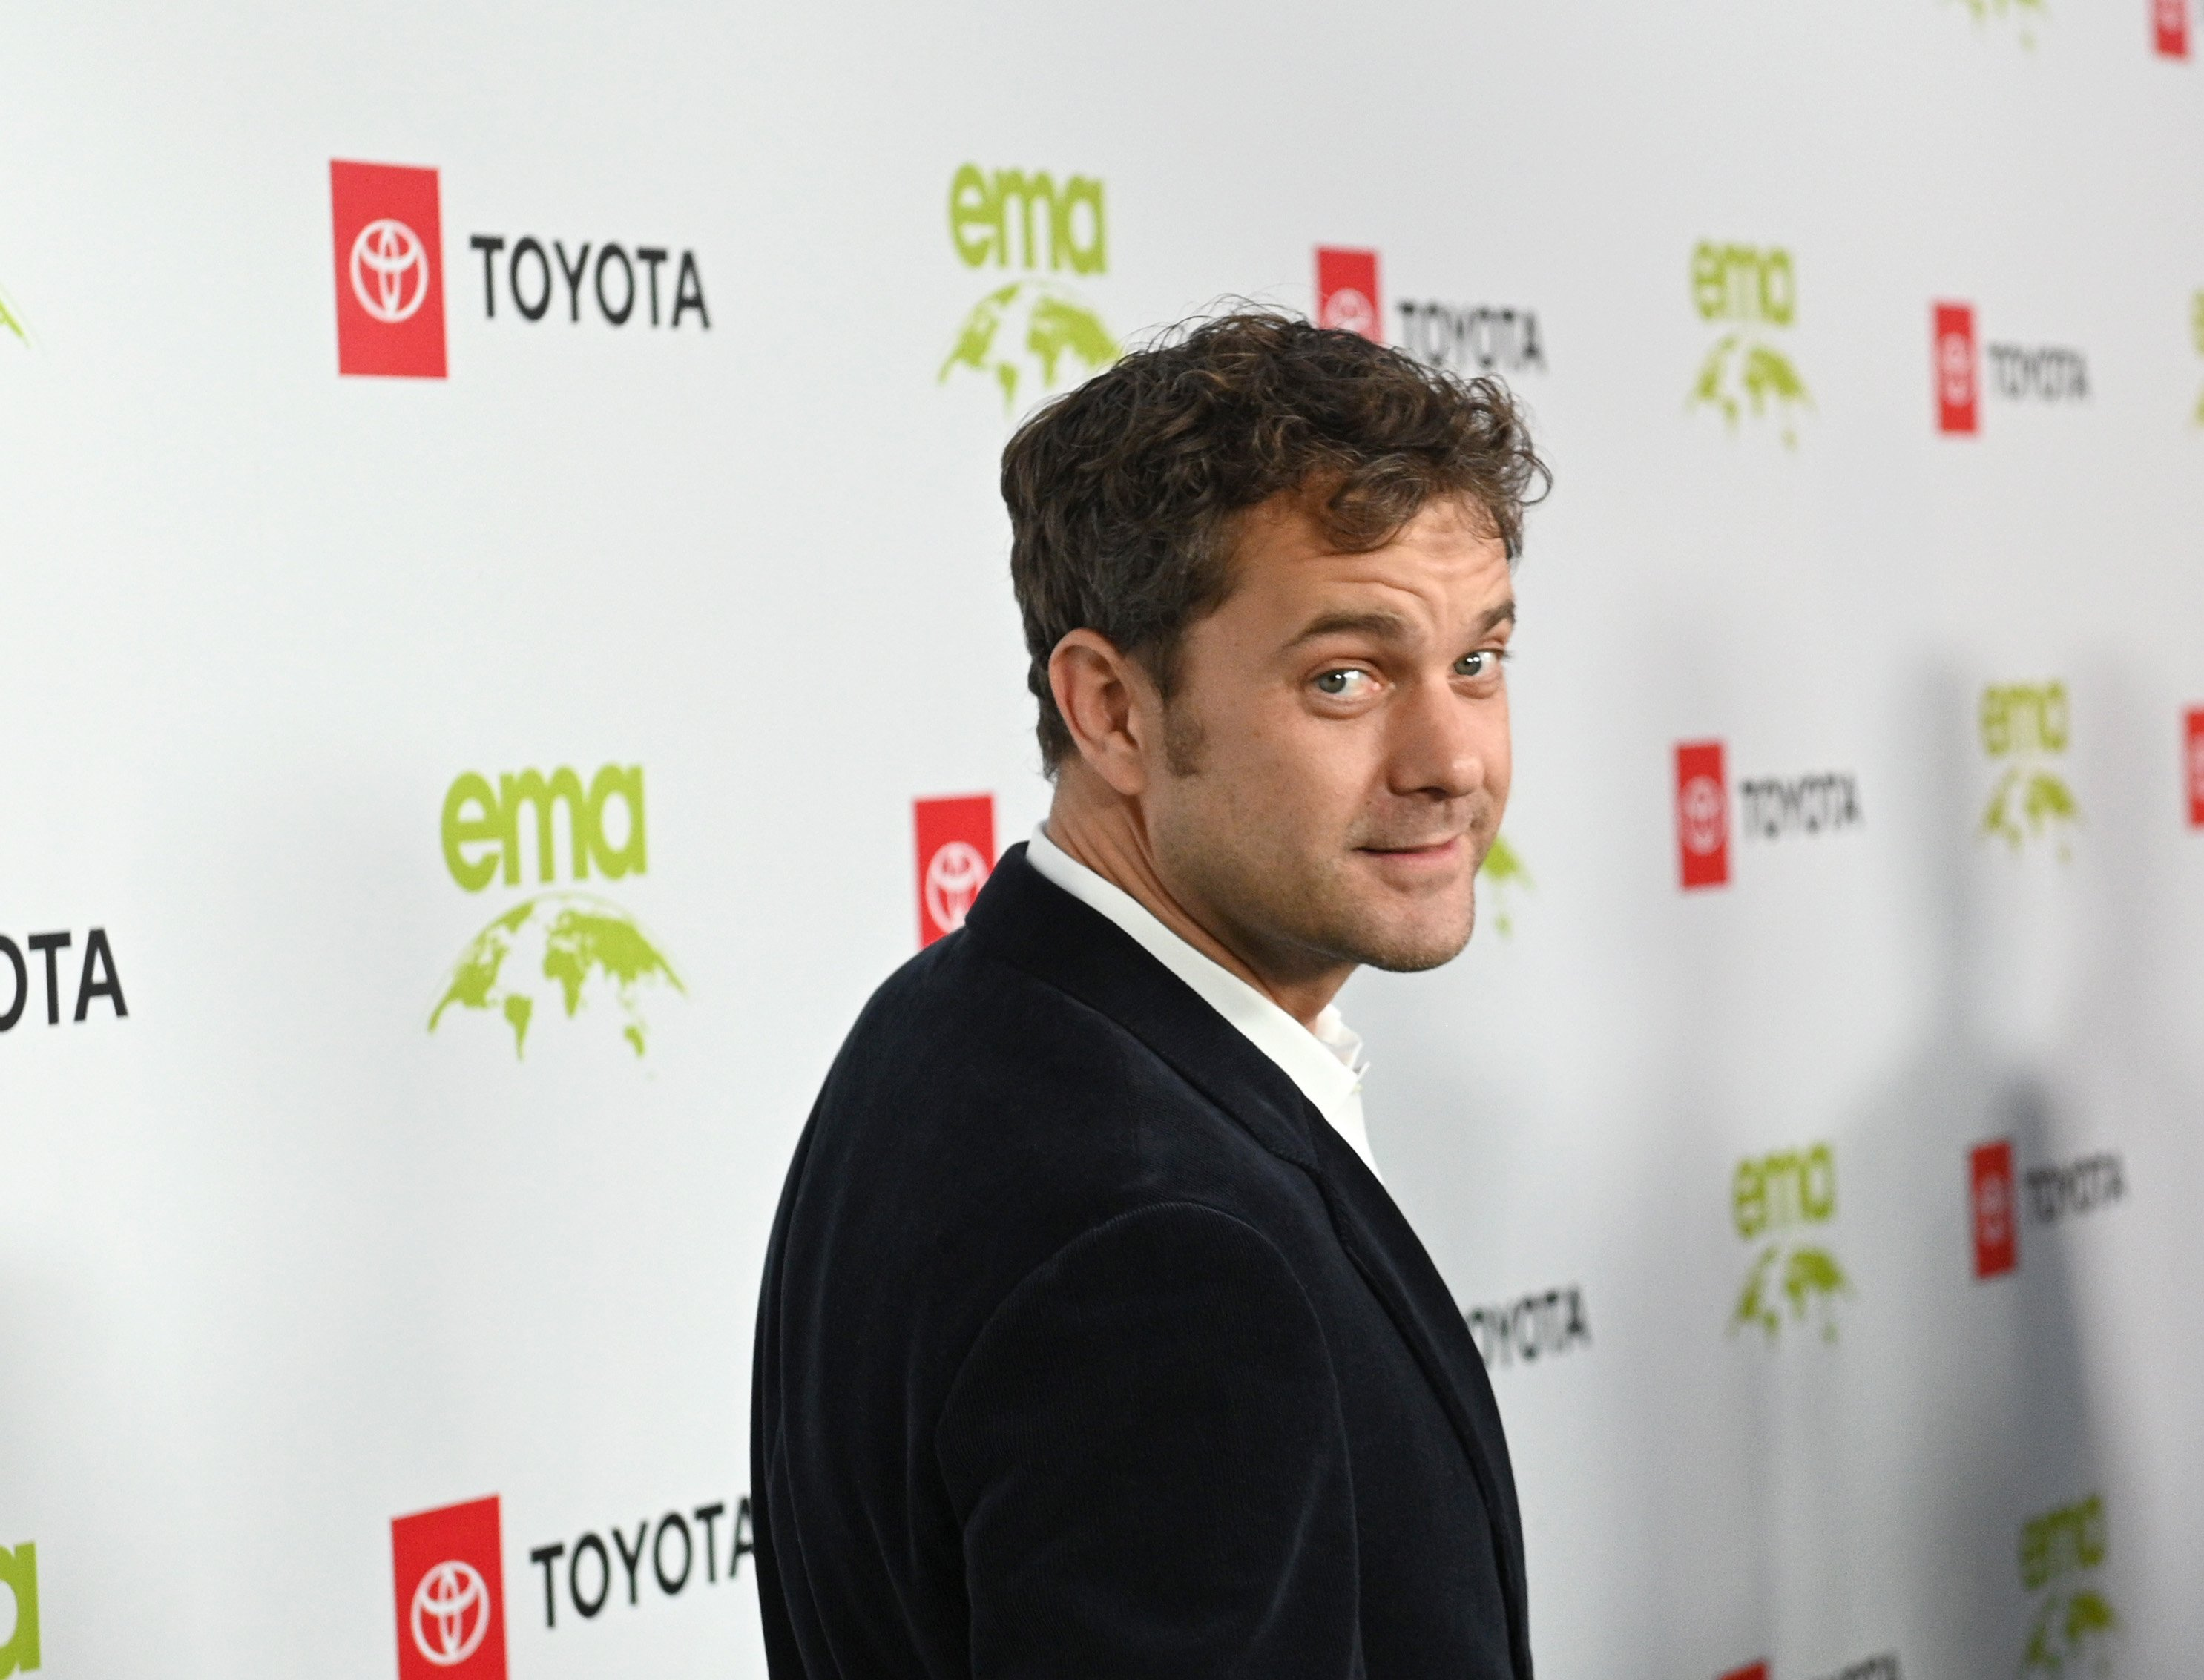 Joshua Jackson attending the Environmental Media Association 2nd Annual Honors Benefit Gala in September 2019. | Photo: Getty Images